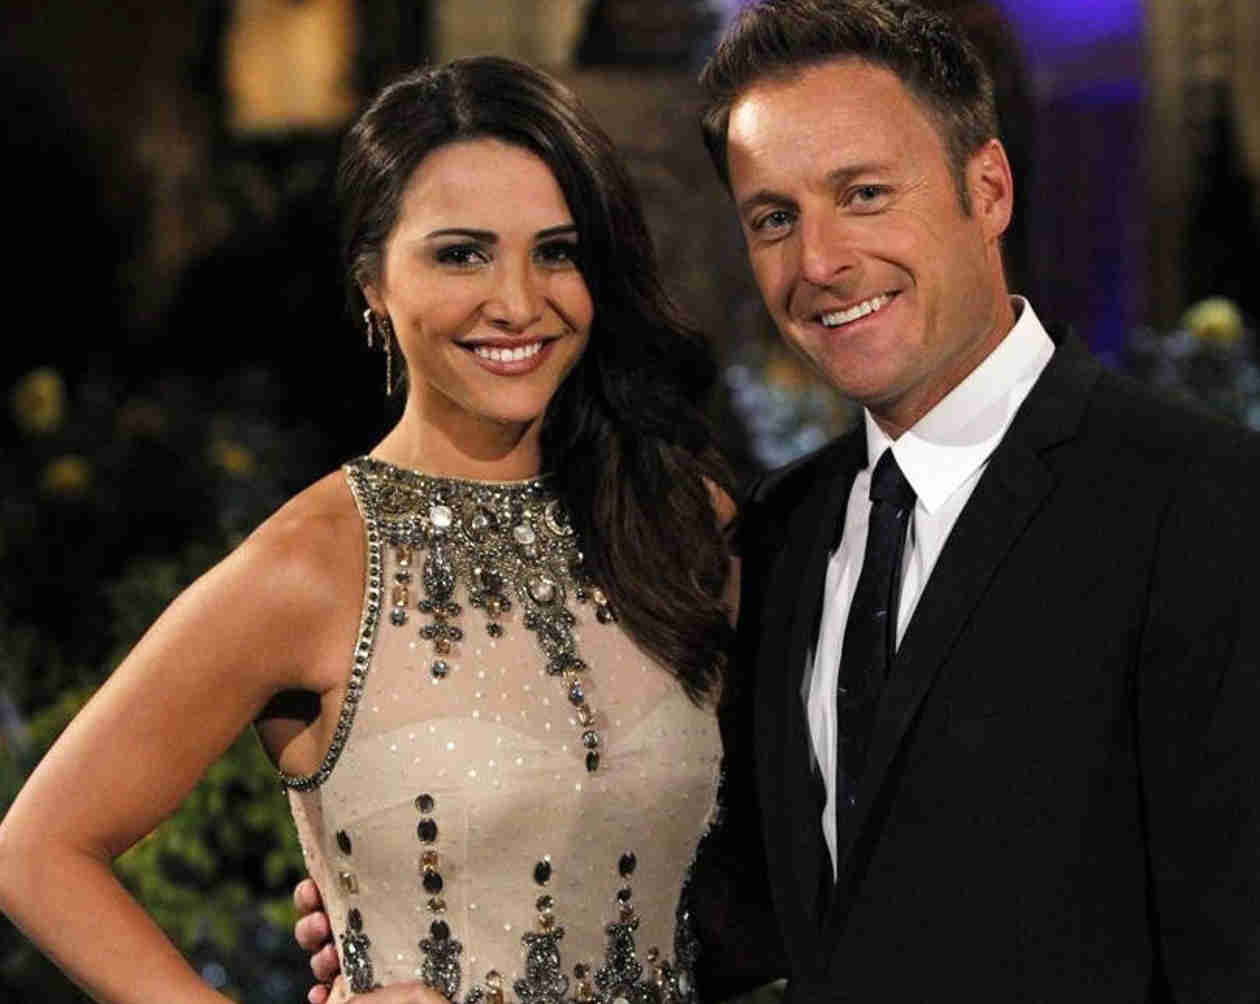 Chris Harrison Admits He Has Favorites — Who Are They? (VIDEO)